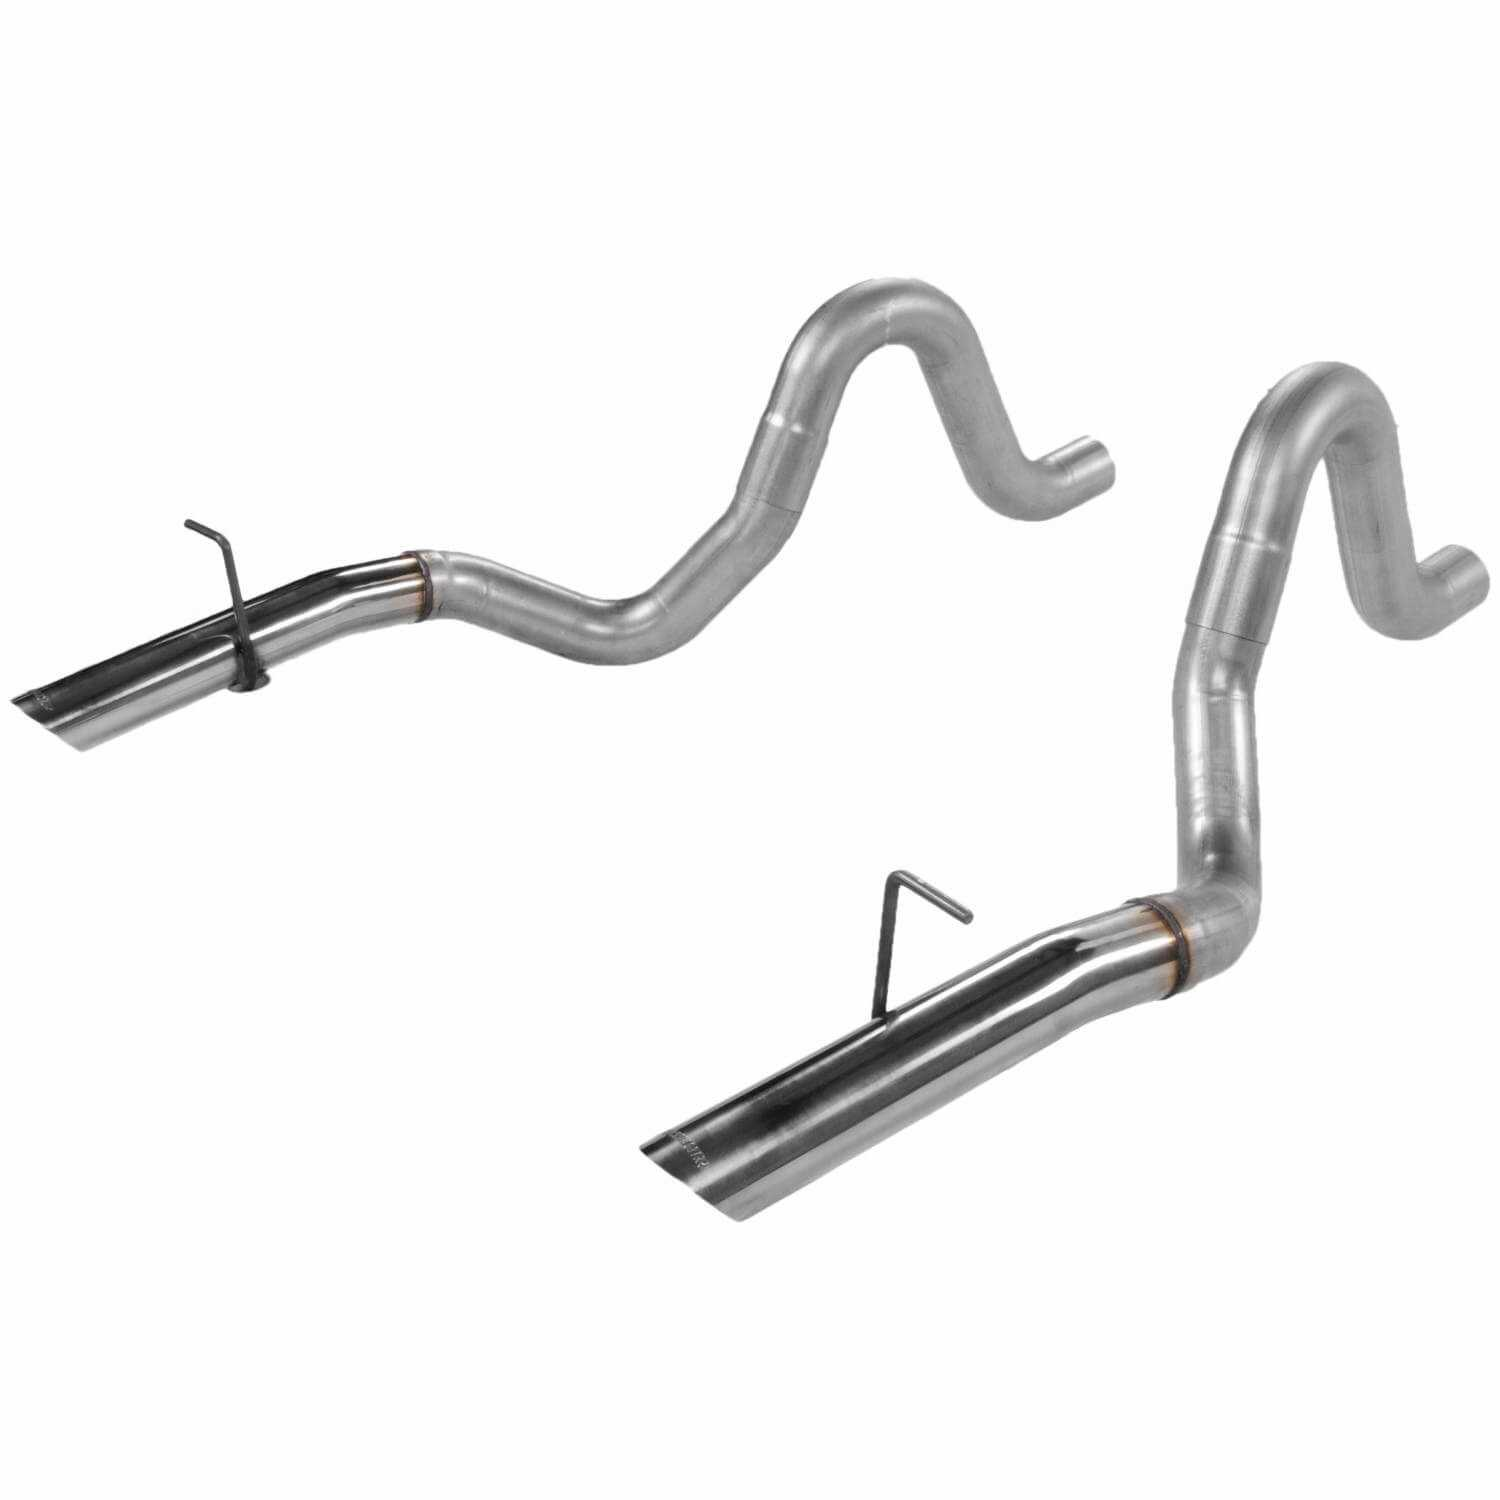 Flowmaster Tailpipe Set 15820